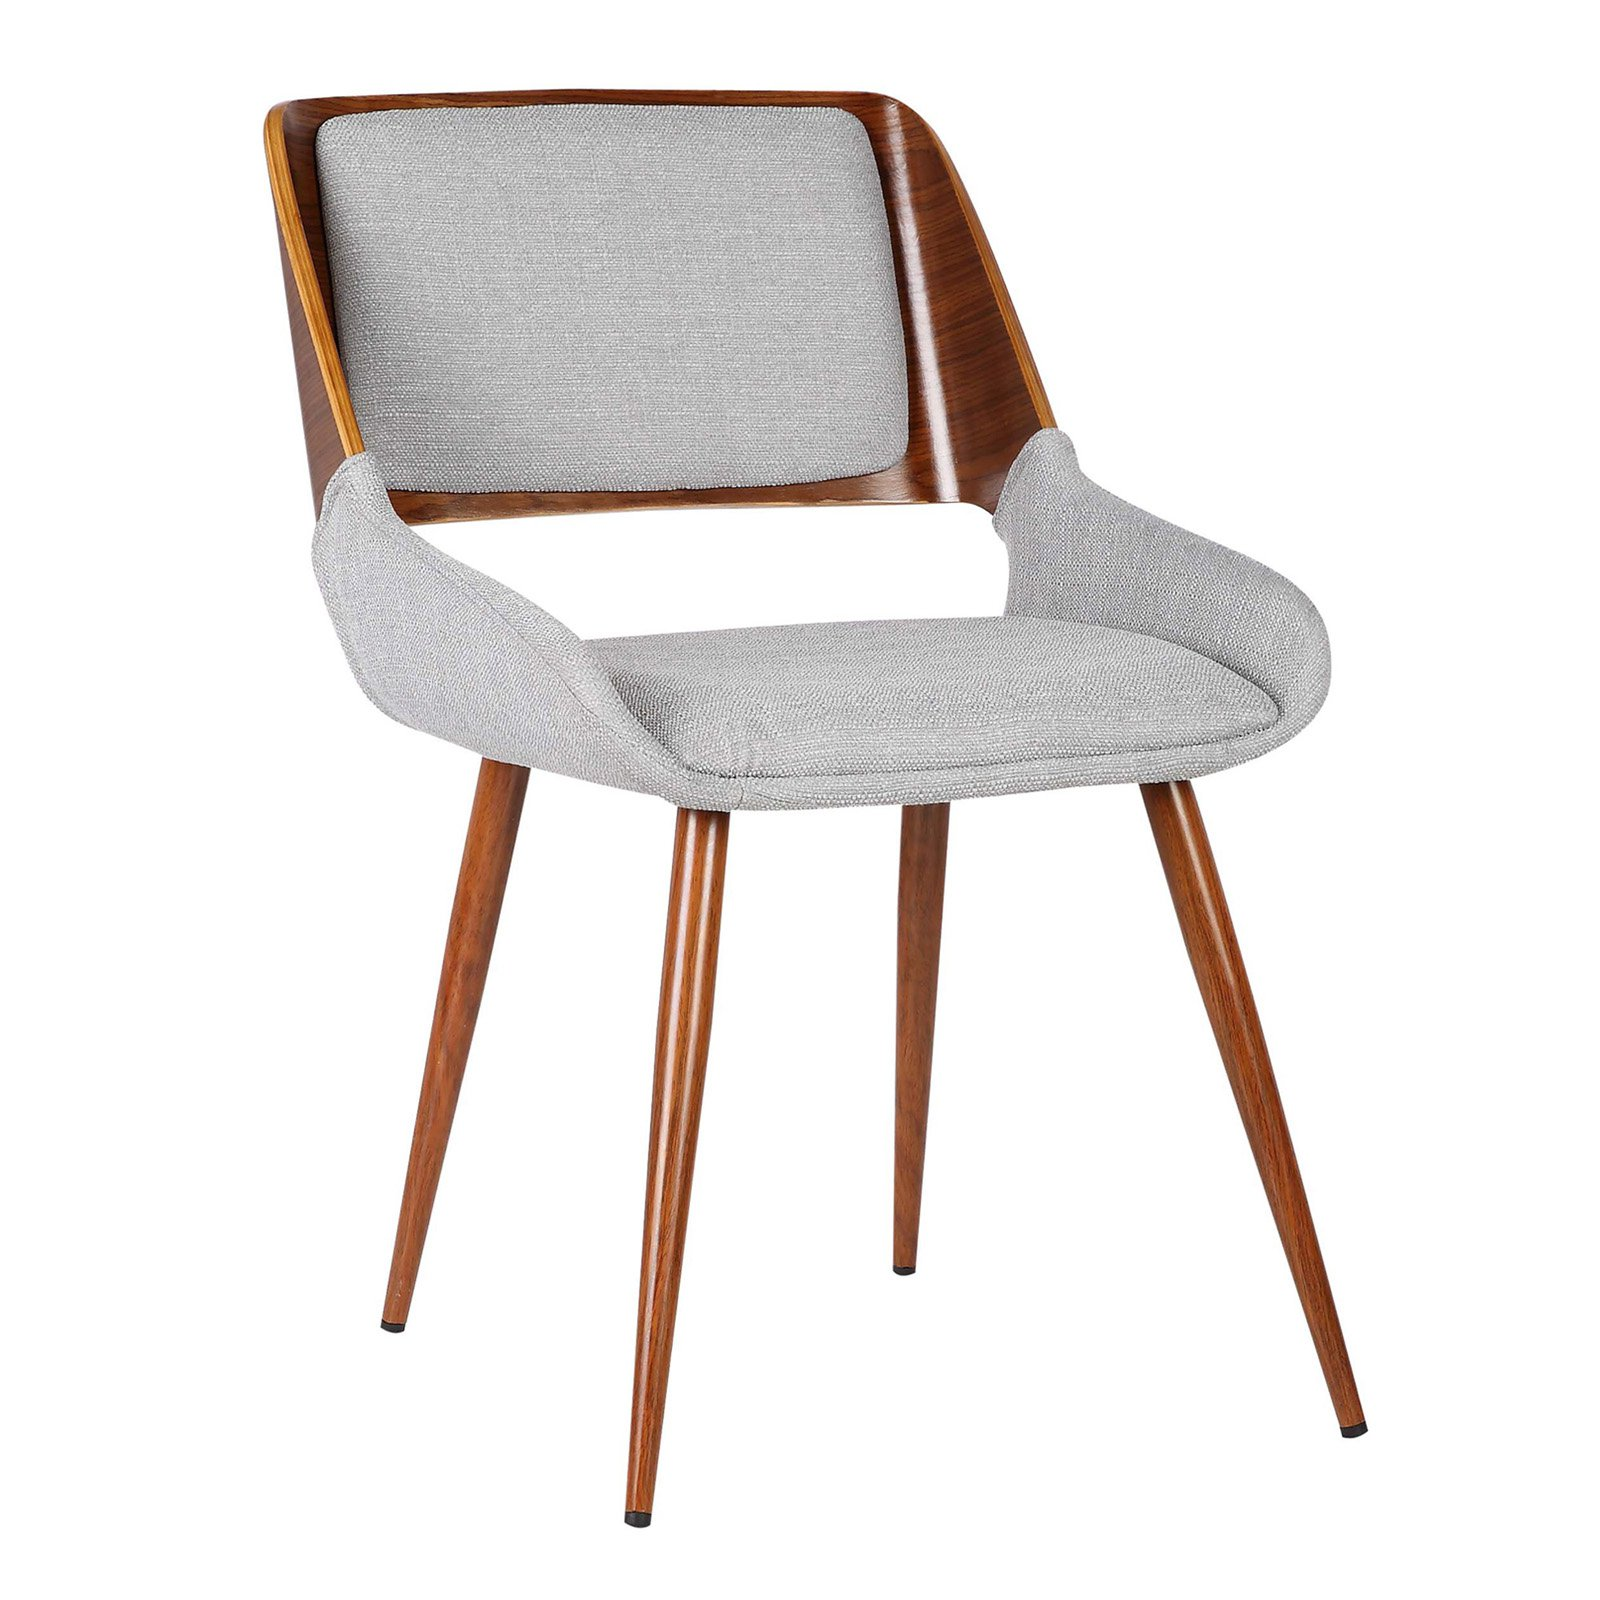 Armen Living Panda Mid-Century Dining Chair in Walnut Wood and Fabric